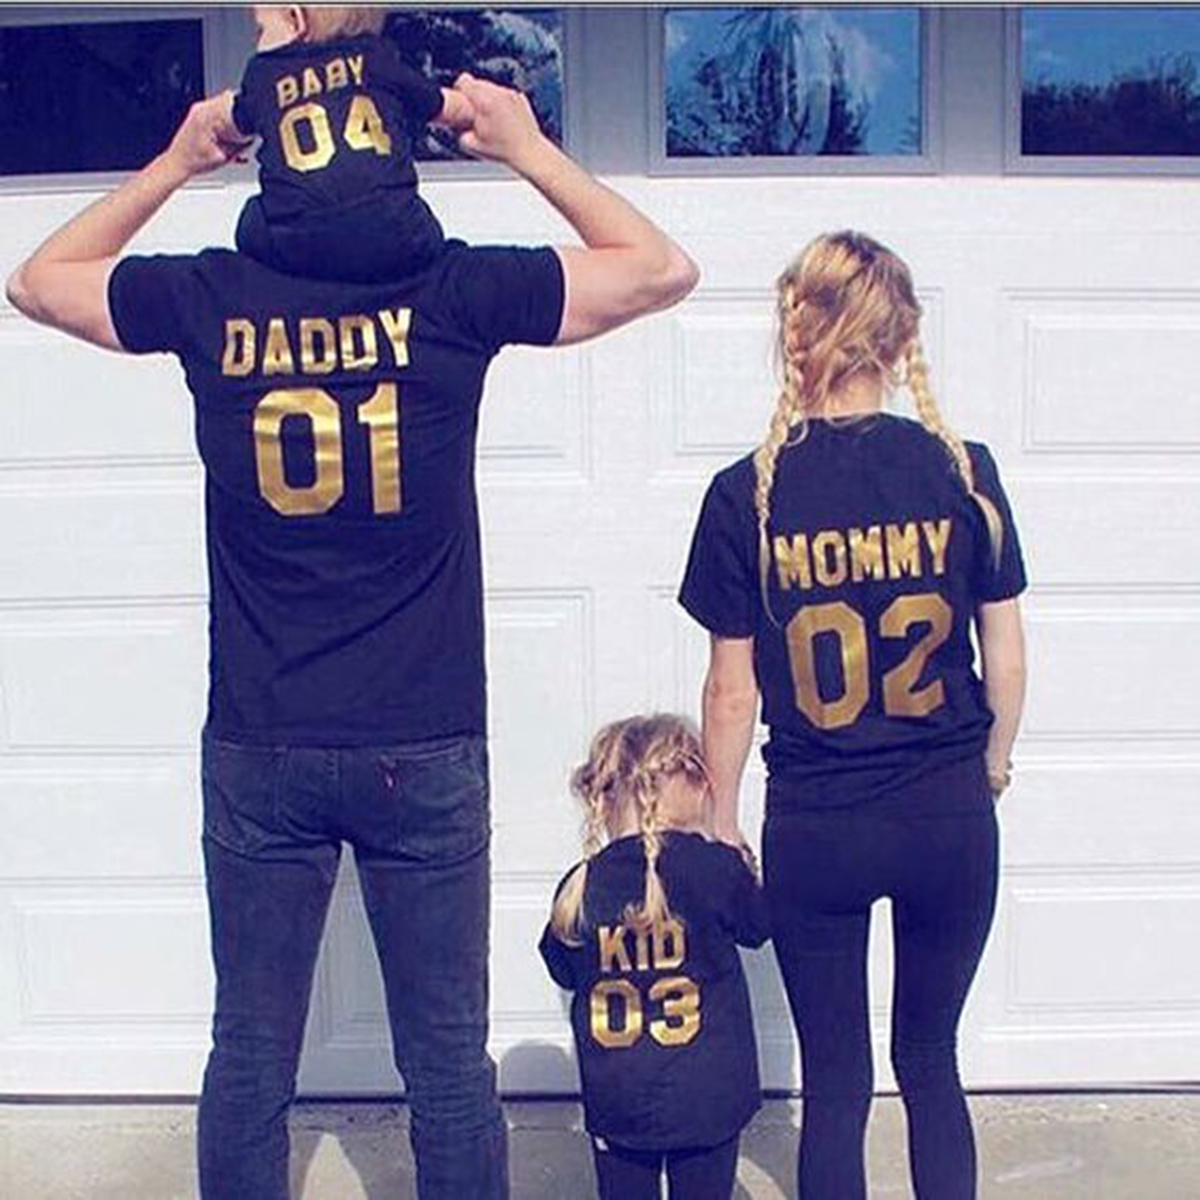 Family Look Clothing Short Sleeve T Shirt DADDY MOMMY KID BABY Girl Boy Clothes Family Matching